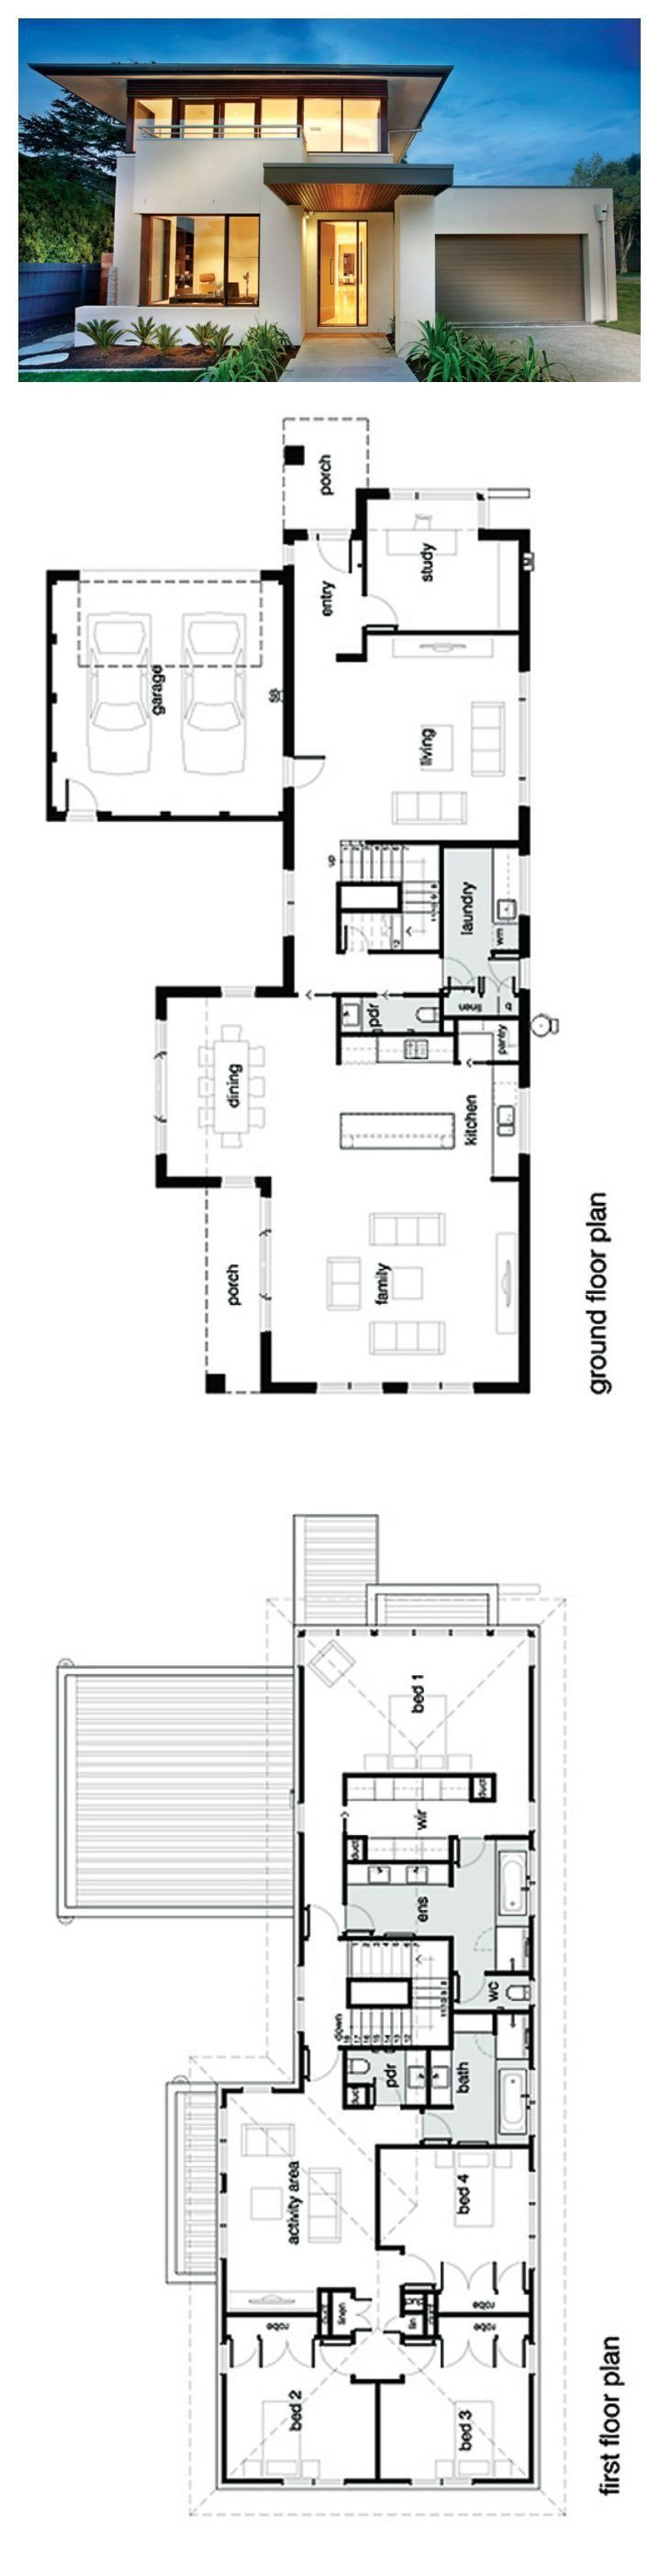 Real Estate Investing Bathroom Modern Double Story House